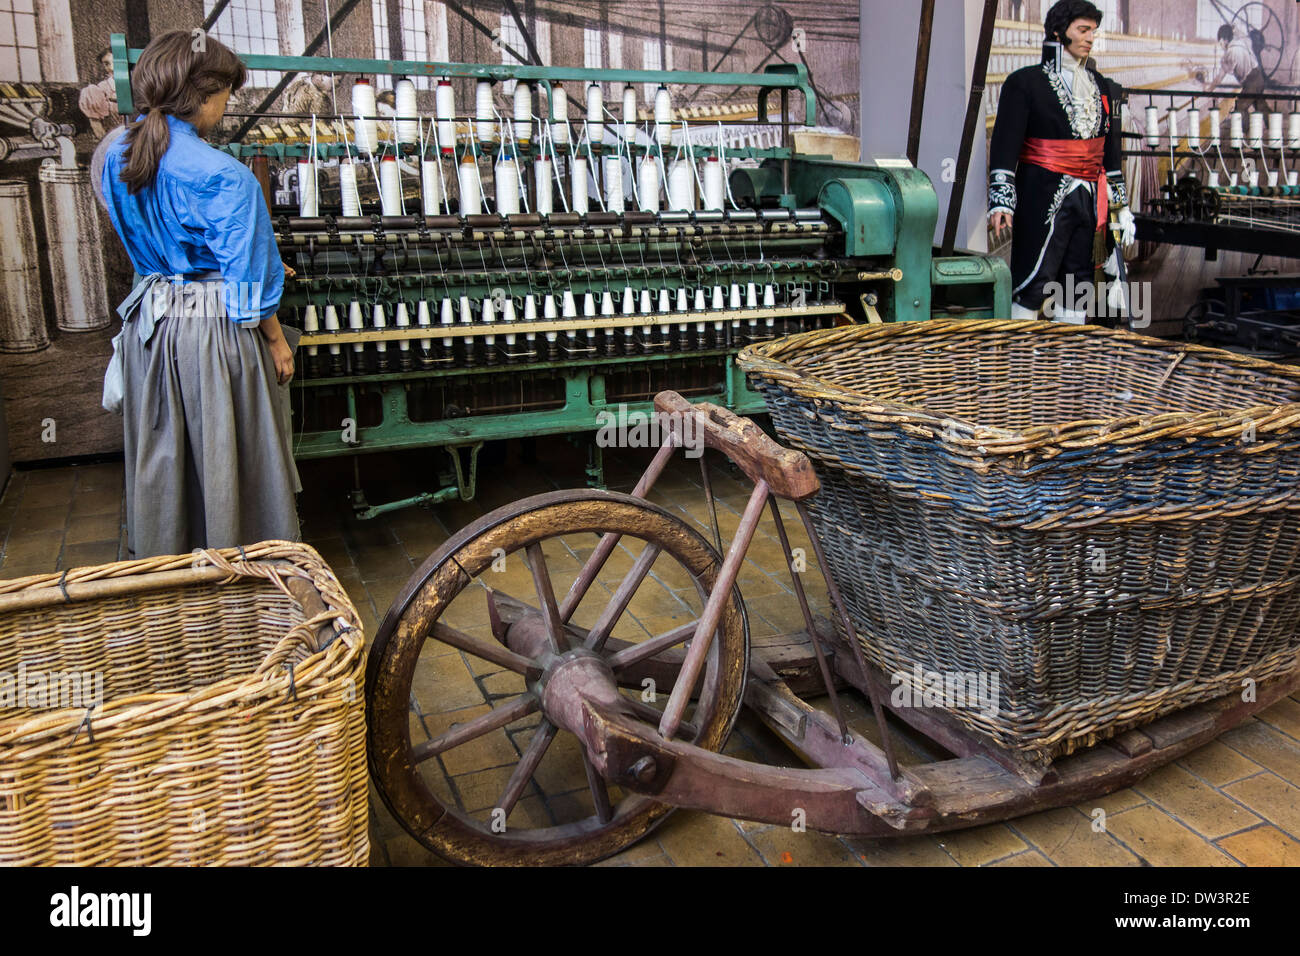 Nineteenth century English ring spinning frame and old wheelbarrow at MIAT, industrial archaeology museum, Ghent, Belgium - Stock Image